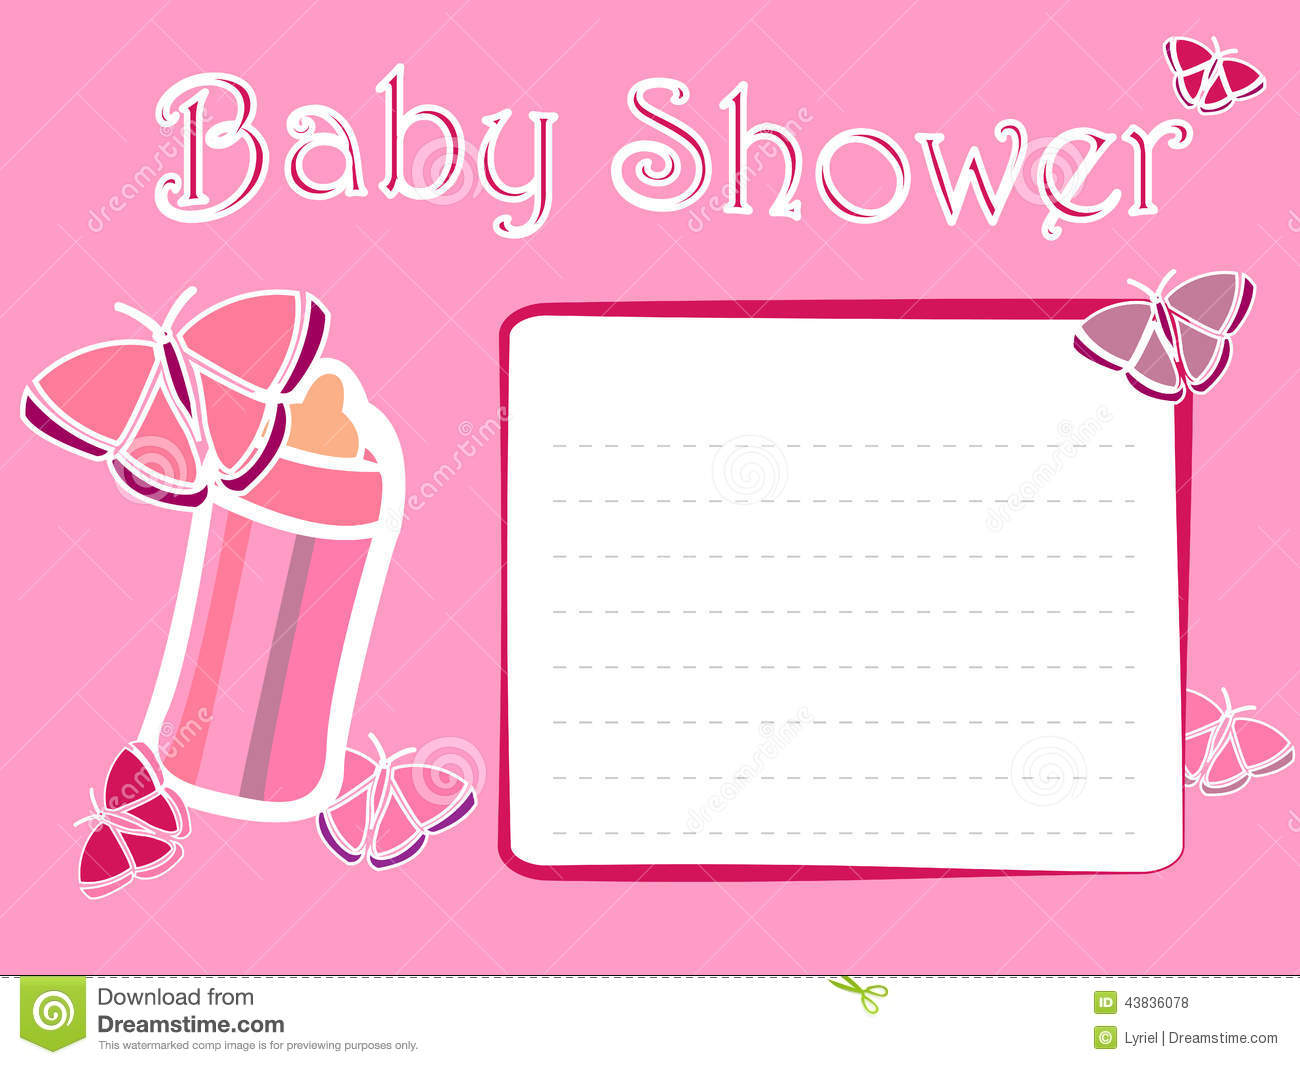 Baby Shower Invitation Cards For Girls is beautiful invitation sample